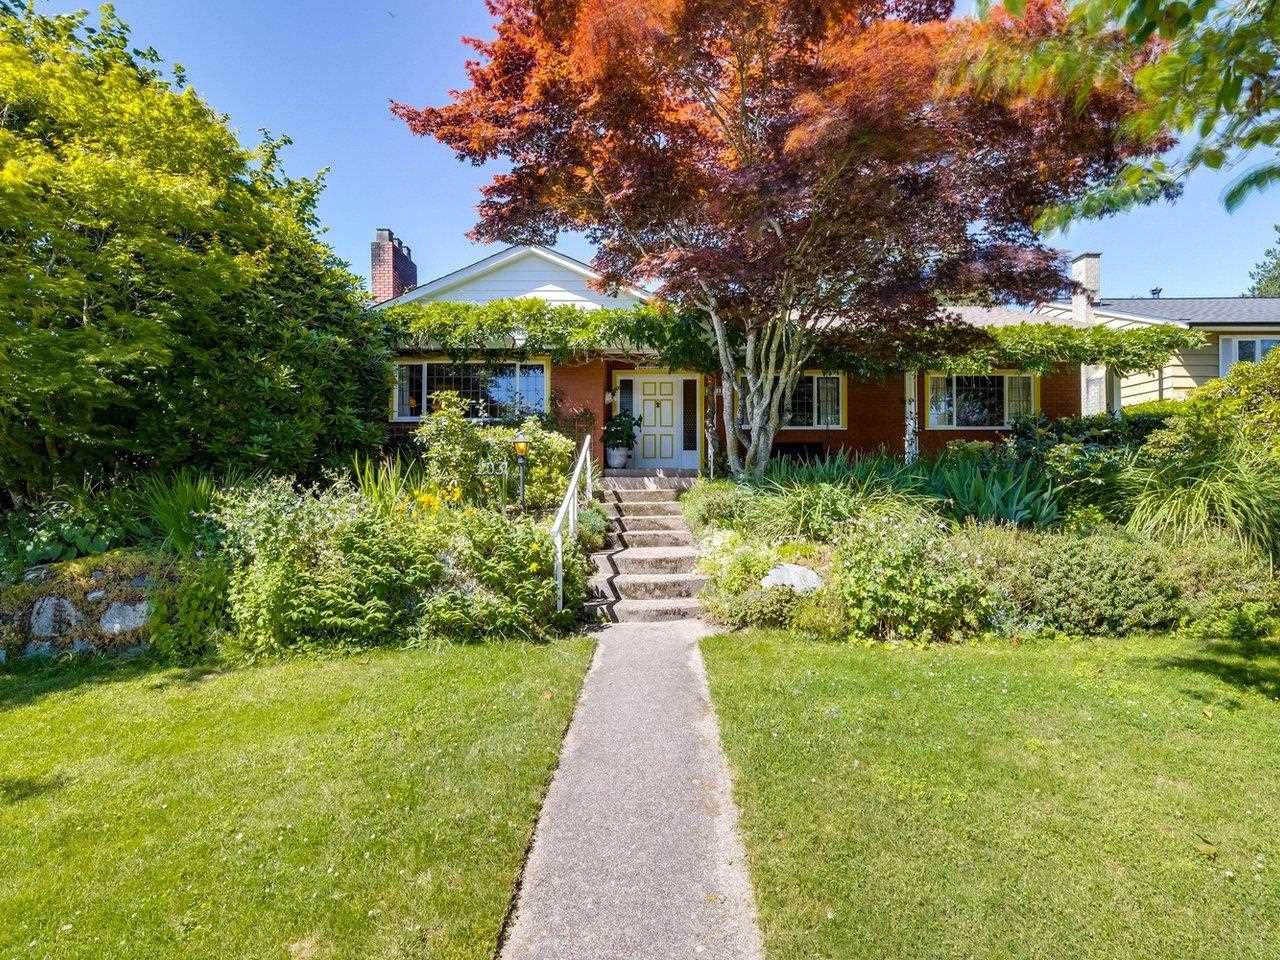 Main Photo: 2031 W 30TH Avenue in Vancouver: Quilchena House for sale (Vancouver West)  : MLS®# R2596902